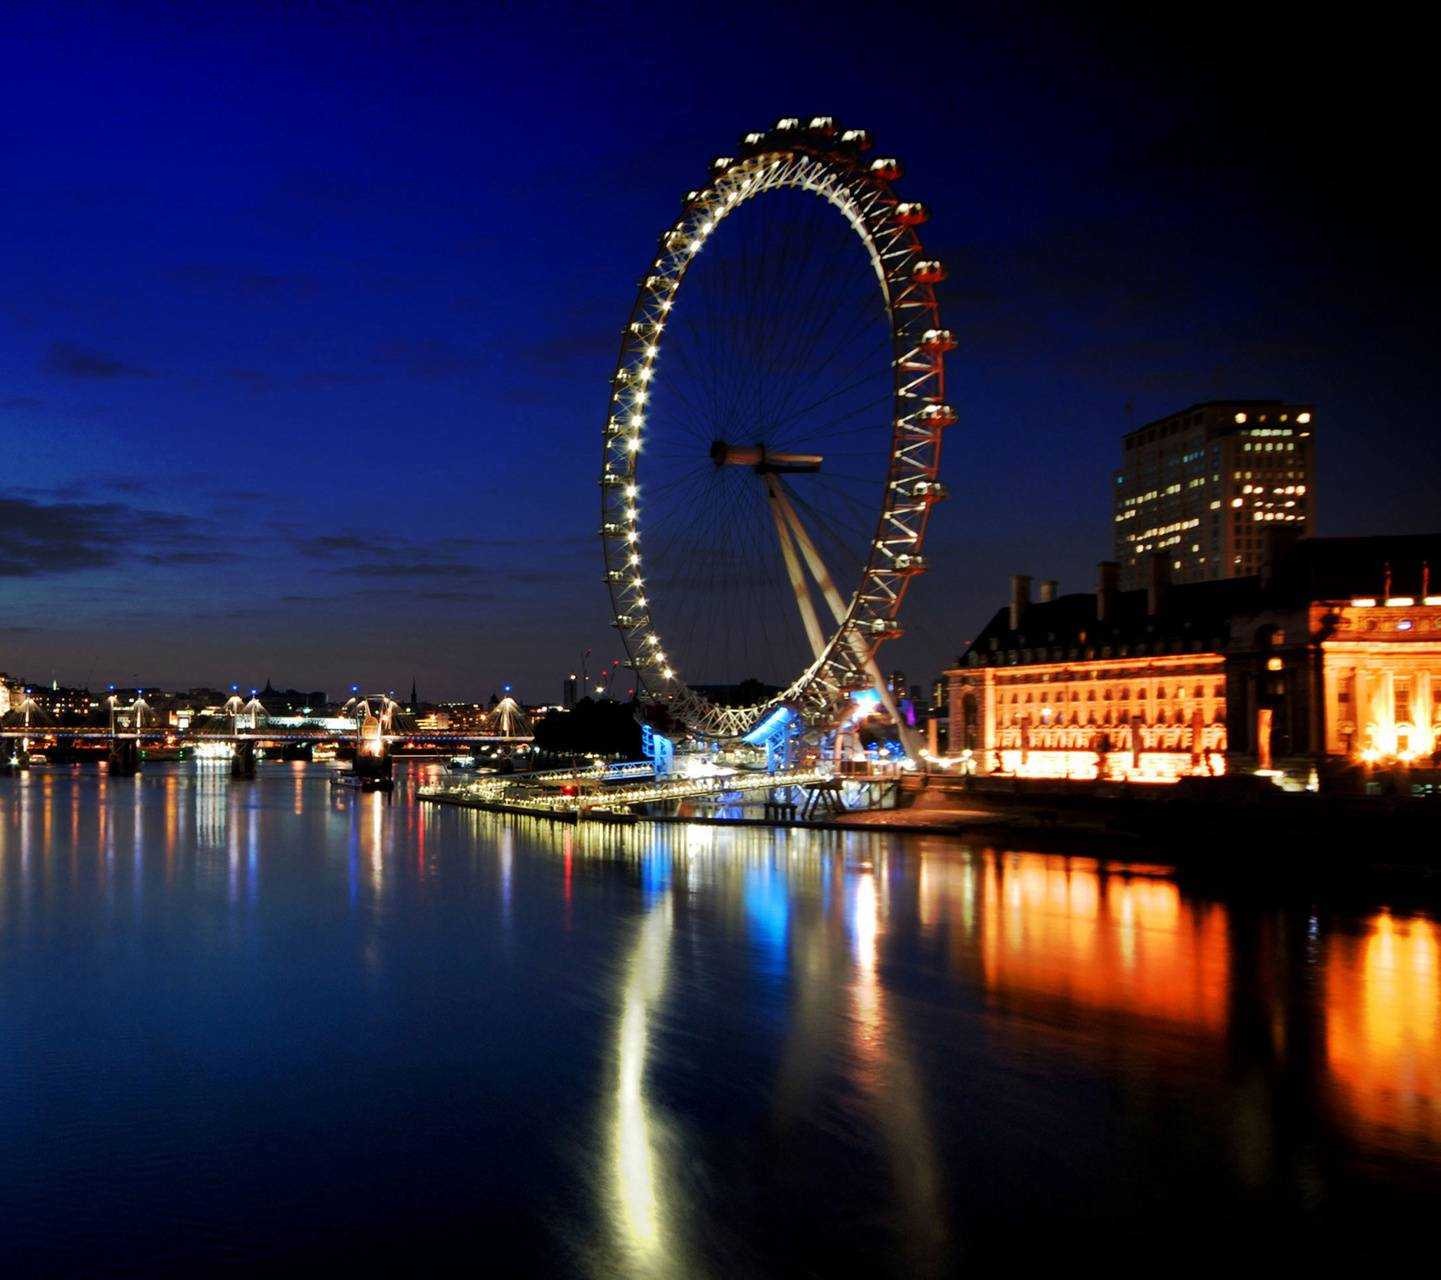 London Eye Wallpaper By Martin19906 20 Free On Zedge Images, Photos, Reviews